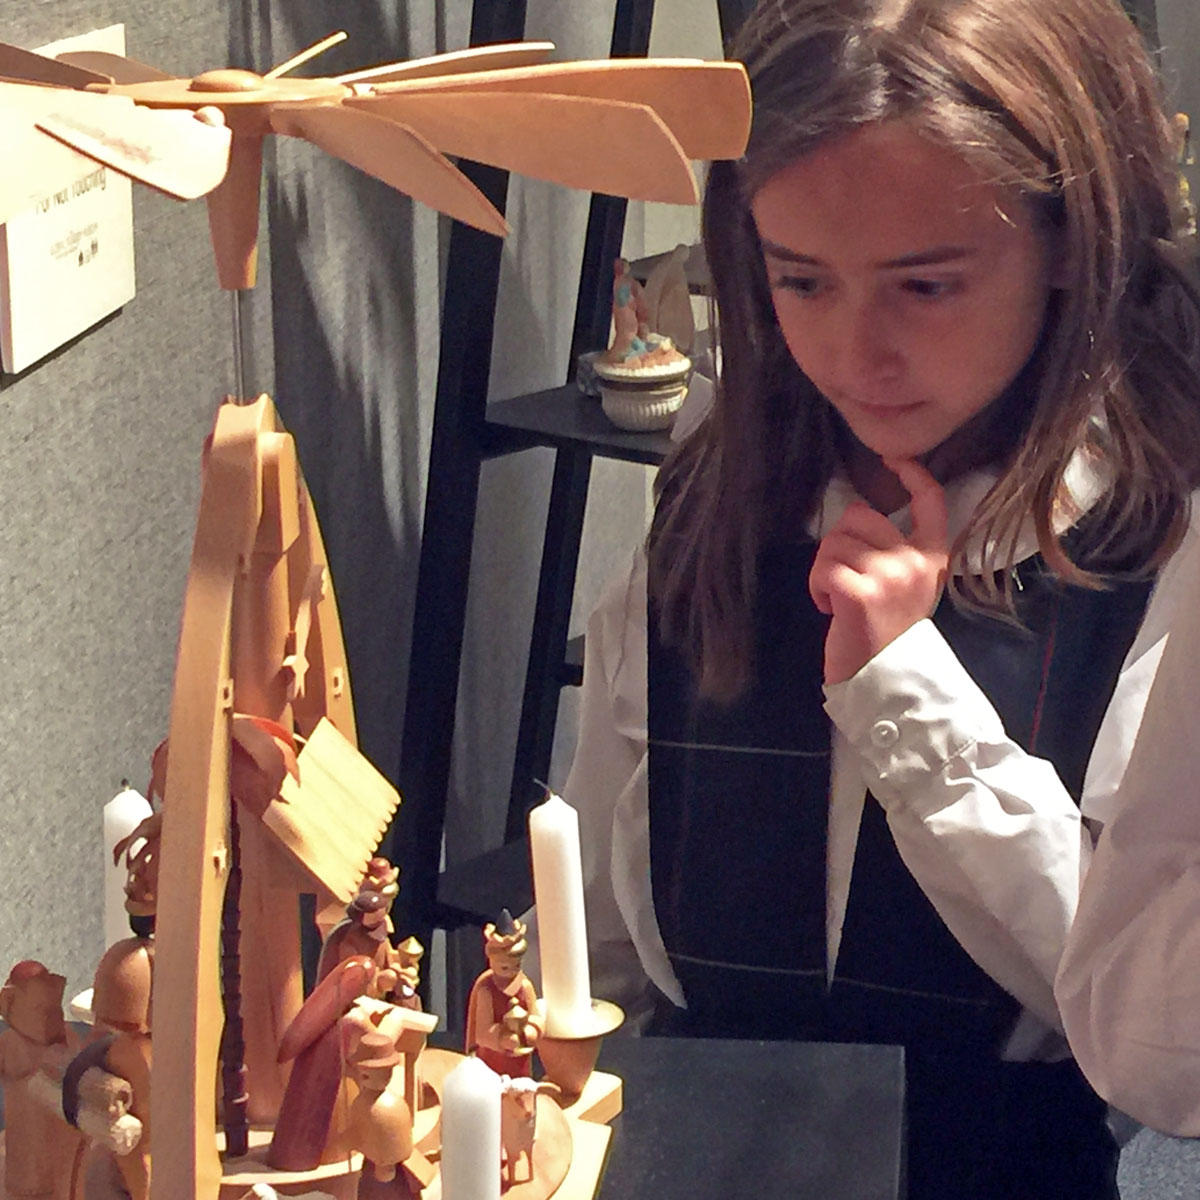 Saint Joseph Catholic School student views a nativity scene at the Nativities Around the World exhibit - Global Village Museum - Ft. Collins - CO